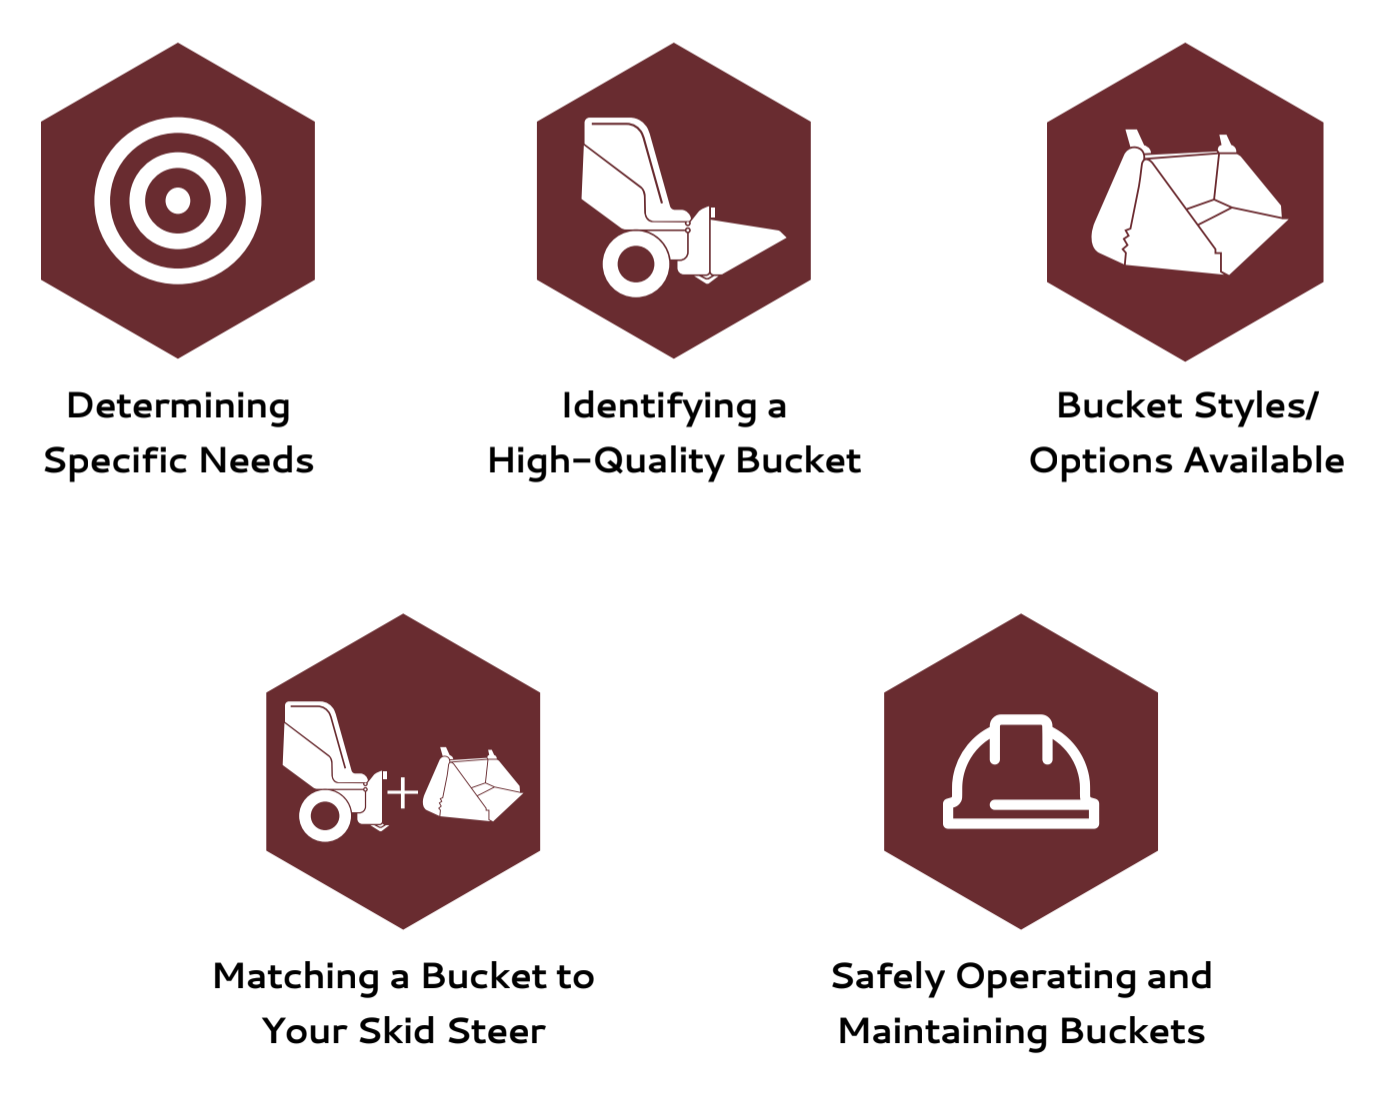 Determining Specific Needs, Identifying a High-Quality Bucket, Bucket StylesOptions Available, Matching a Bucket to Your Skid Steer, Safely Operating and Maintaining Buckets